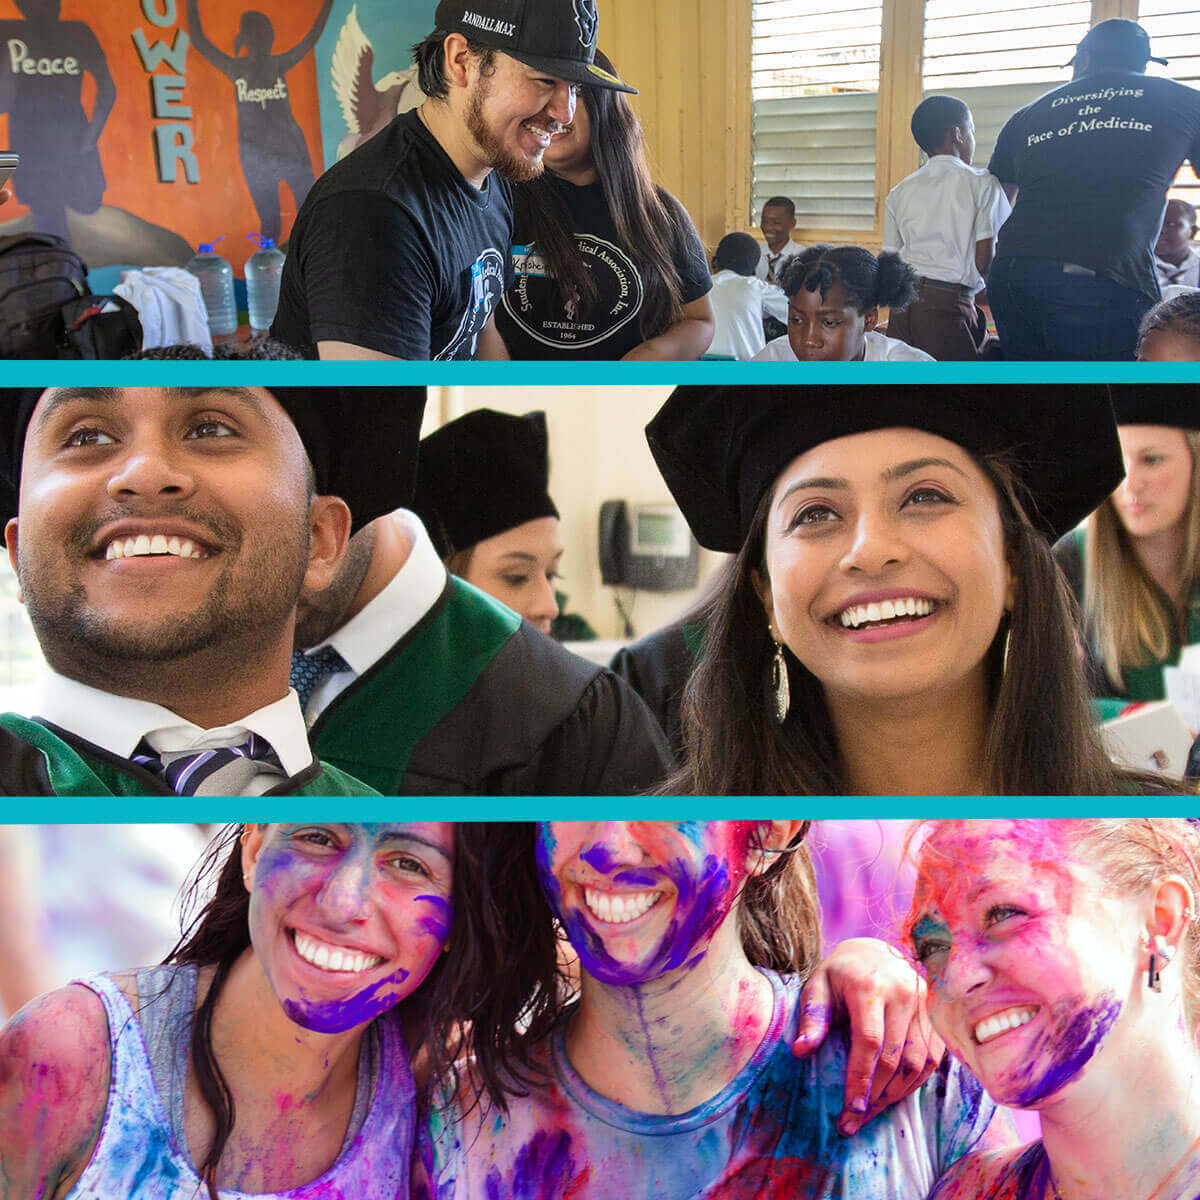 A series of three photos at SGU: one of students volunteering with children, one of recent graduates celebrating, and one of three students smiling after completing a color run.